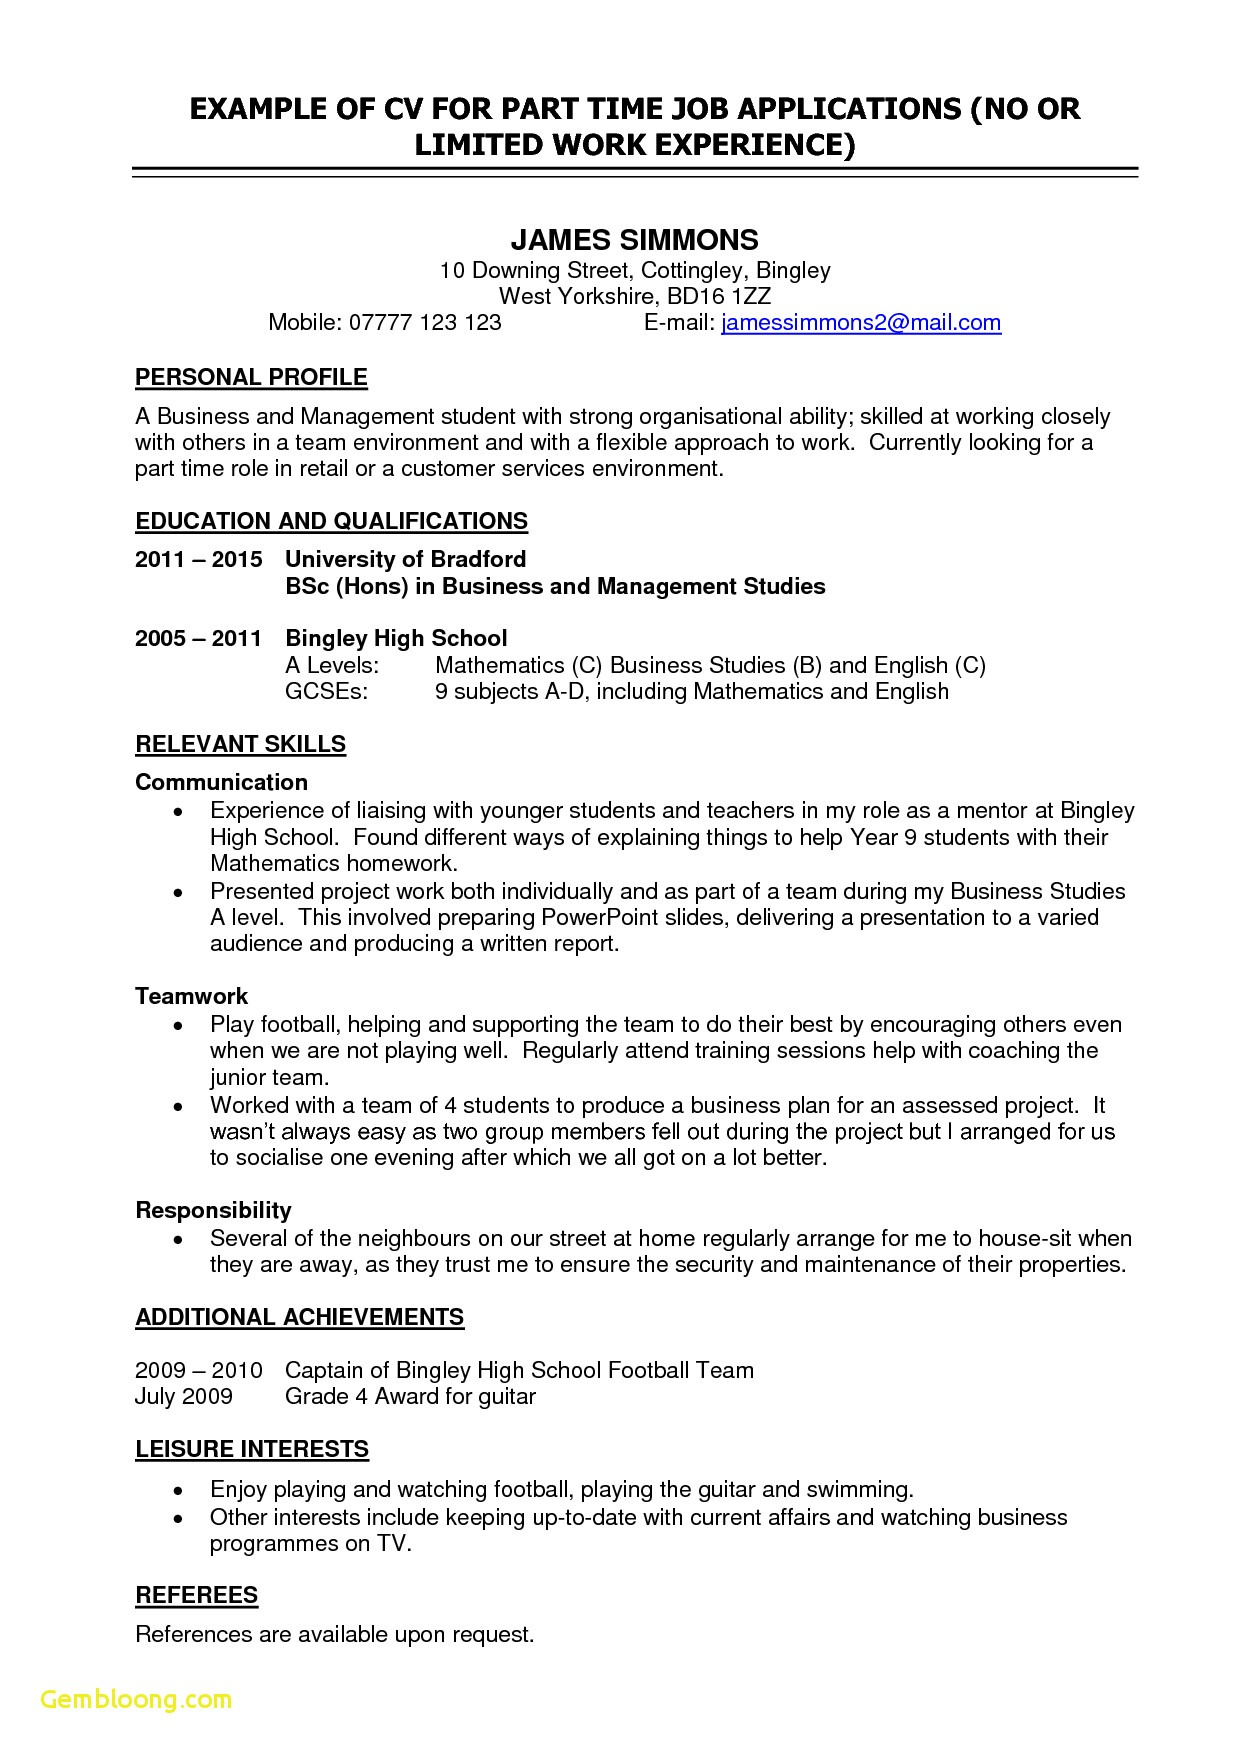 Seek Cover Letter Template - College Resume Templates Resume Outline Examples Unique Od